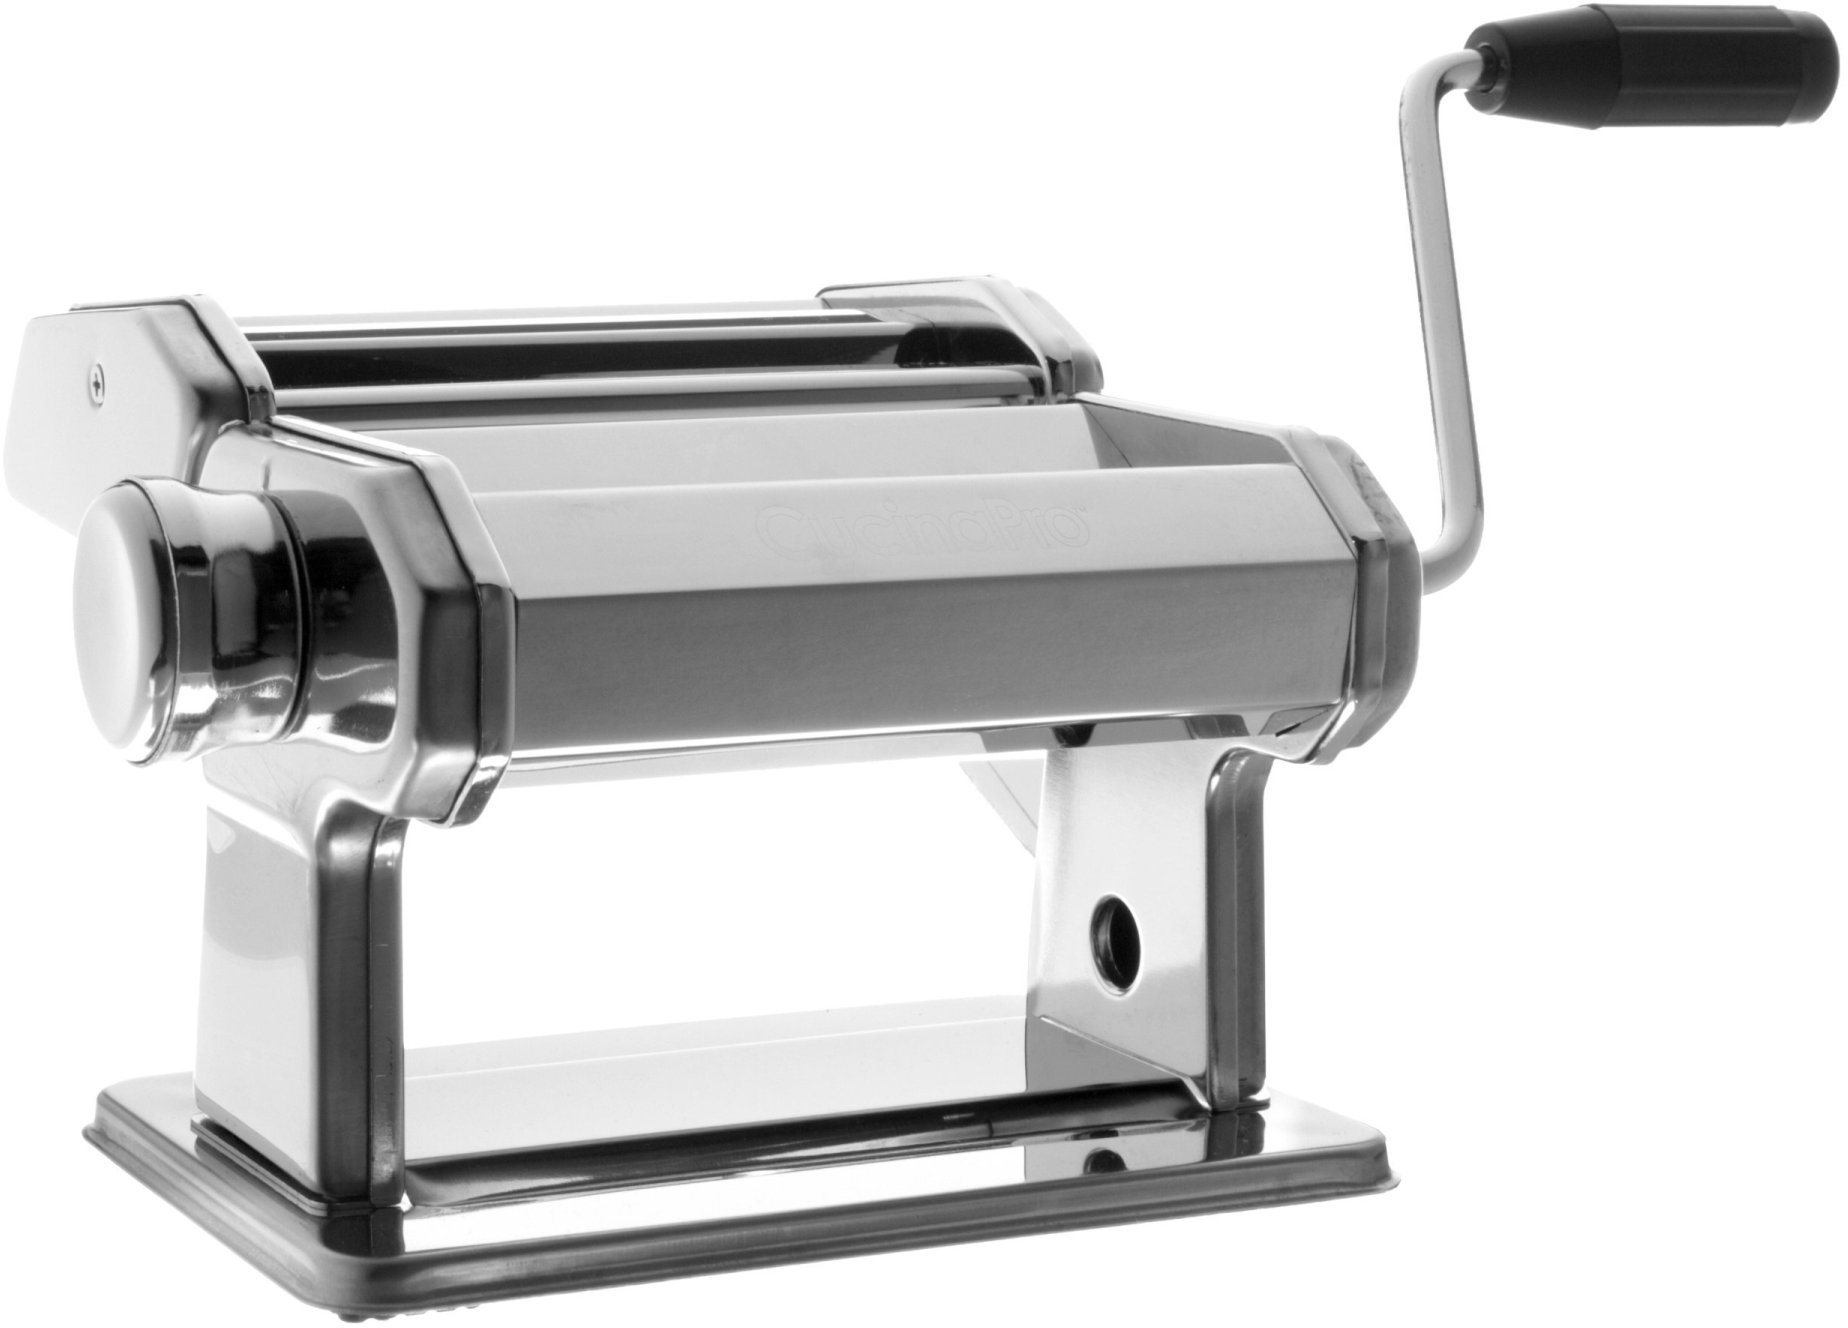 Pasta Maker Machine (177) By Cucina Pro - Heavy Duty Steel Construction - with Fettucine and Spaghetti attachment and Recipes by CucinaPro